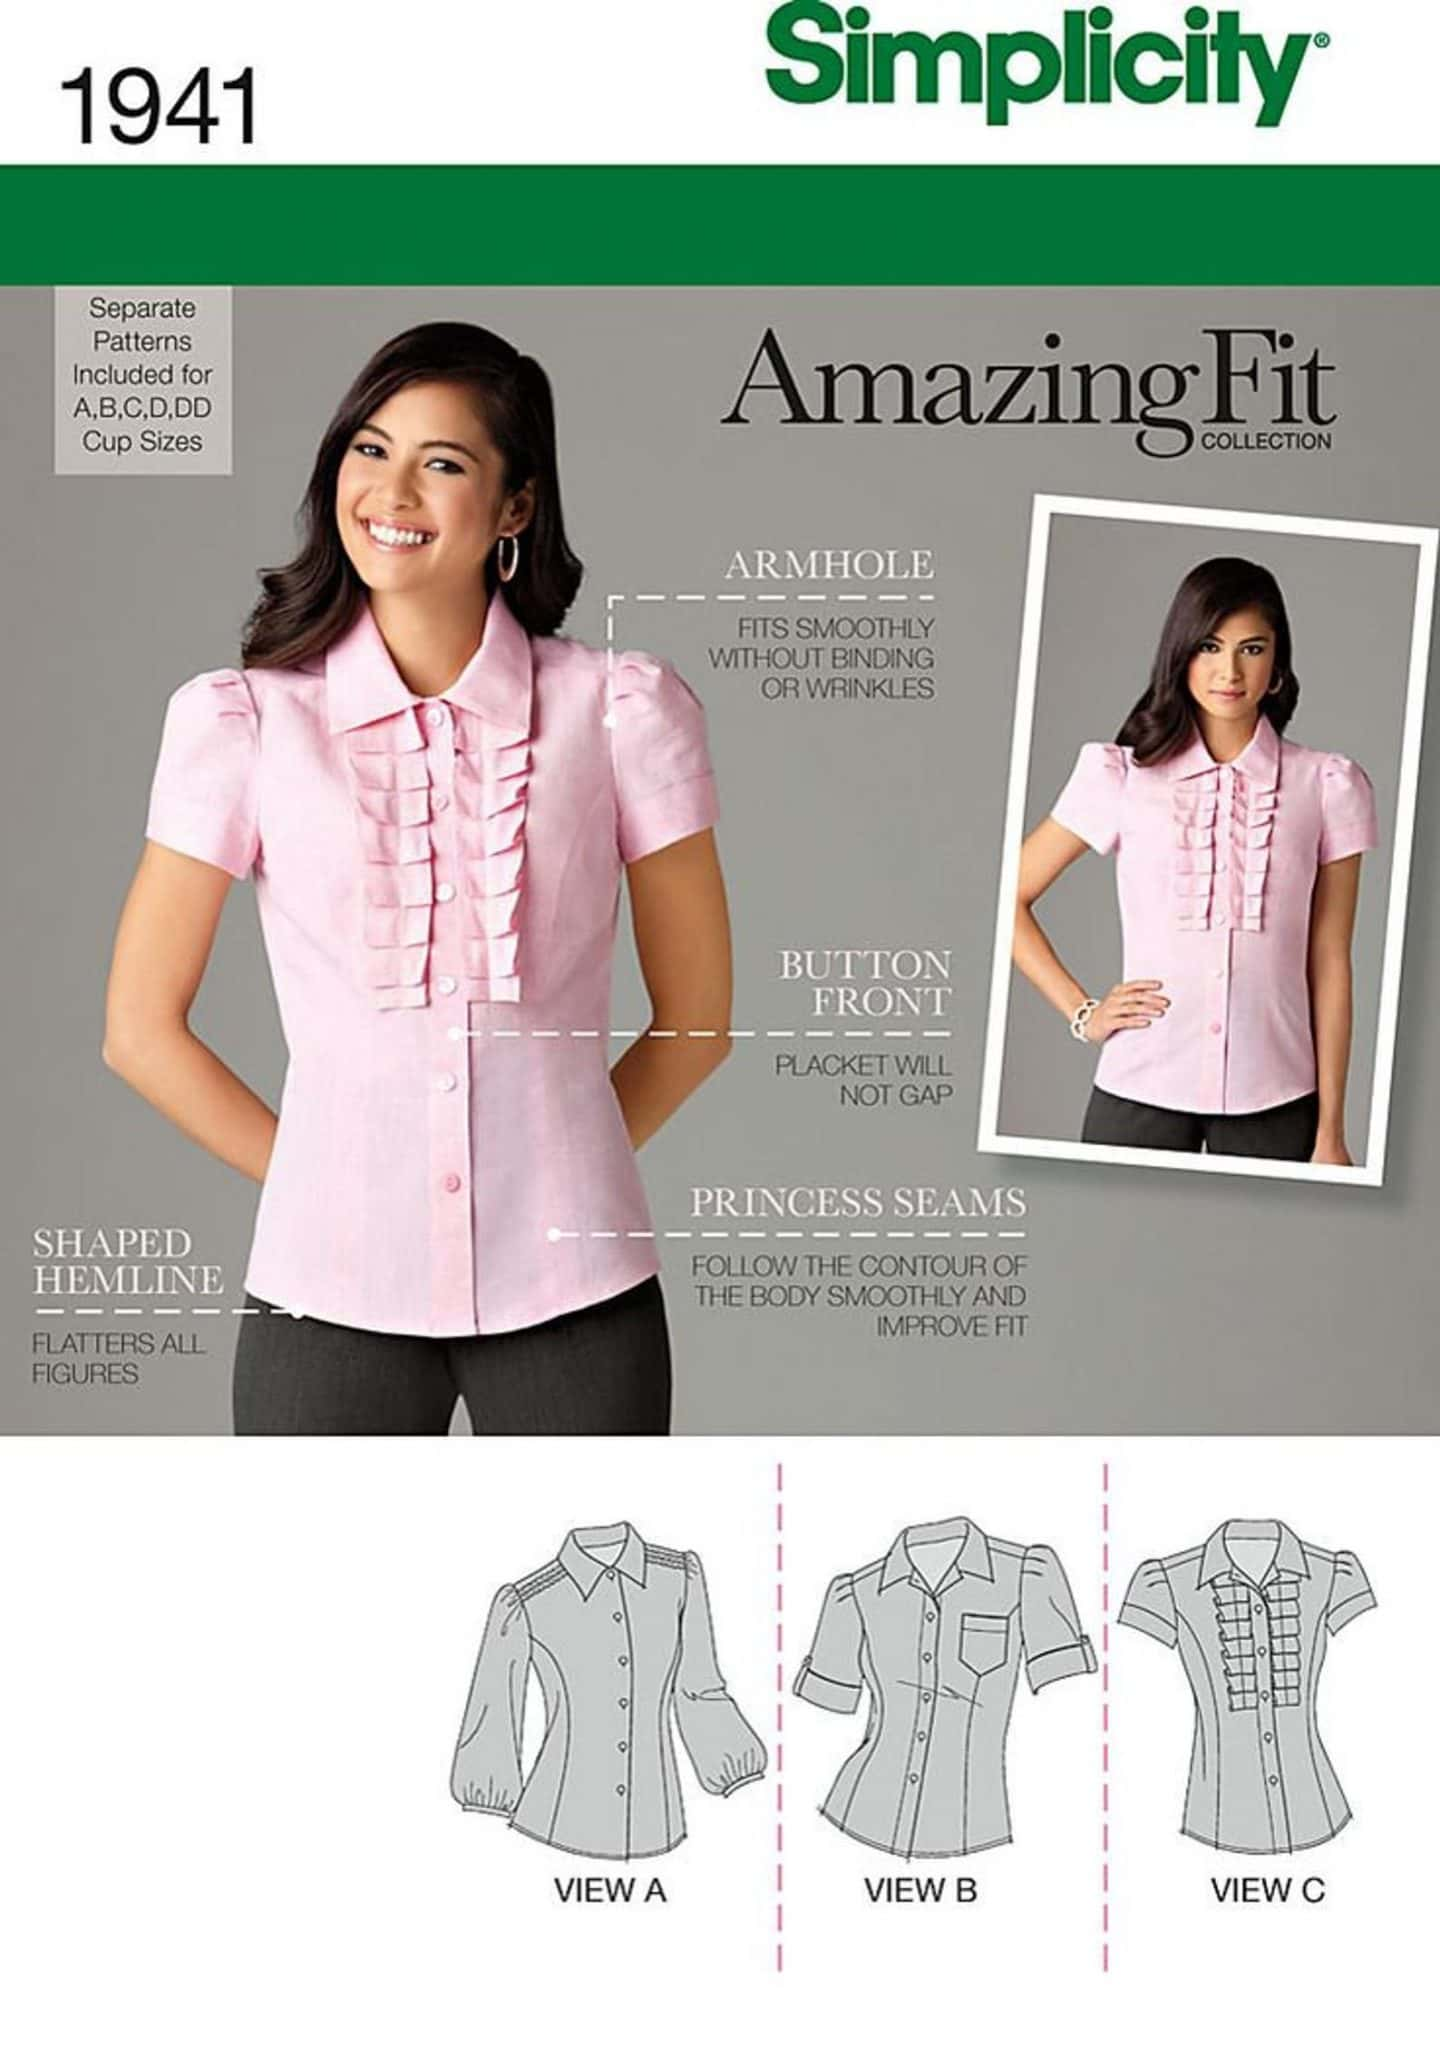 Image of Simplicity 1941 Amazing Fit blouse with a woman standing smiling to the camera wearing a pink buttoned up blouse with placket pleats and drawings of the three versions of the finished blouse